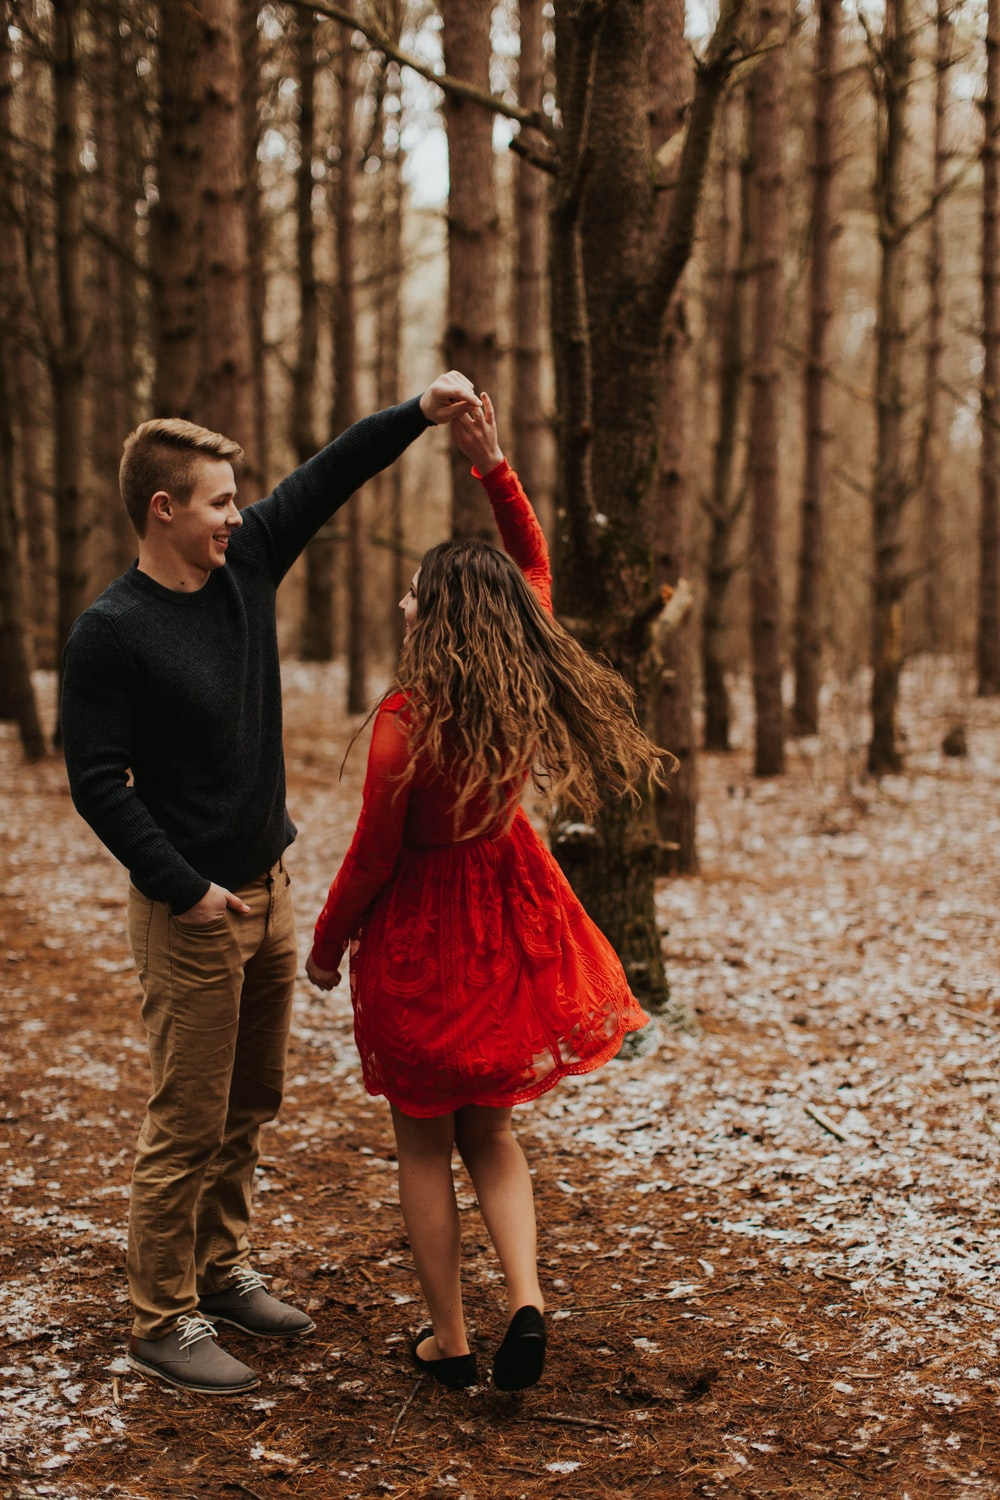 smiling woman and man dancing near trees